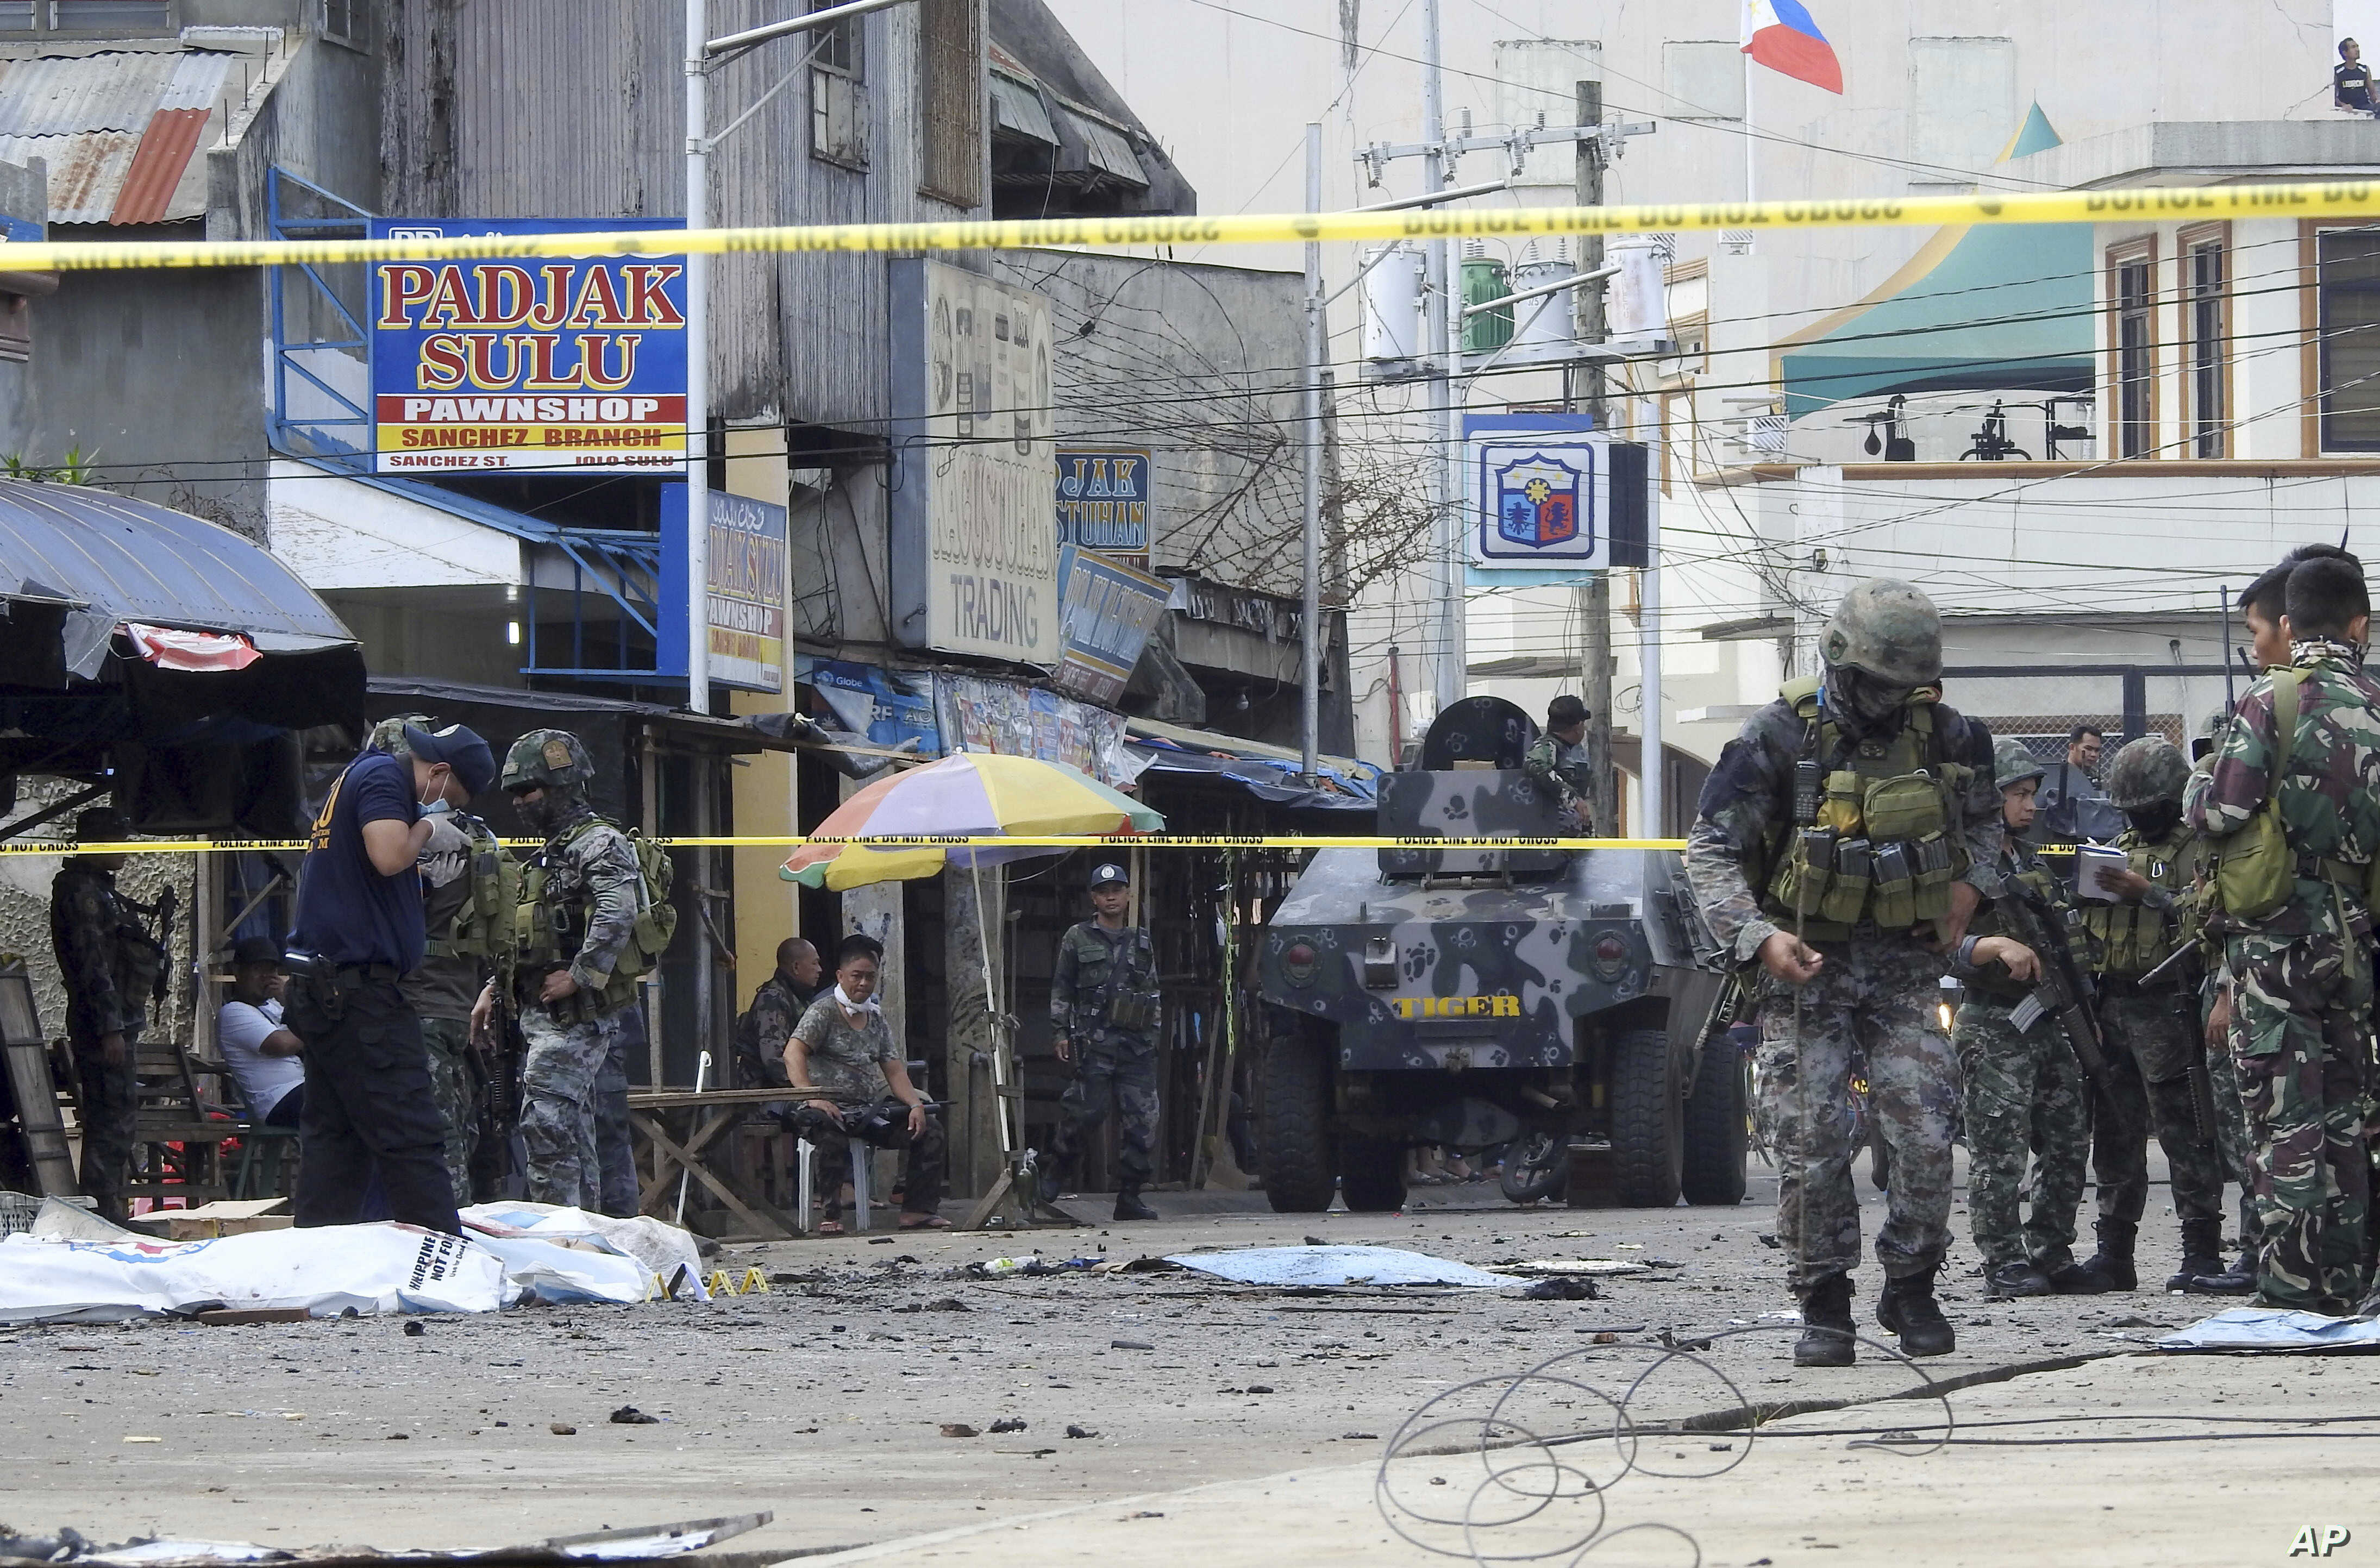 Philippine Bombings May Be Protest of Muslim Autonomy Law